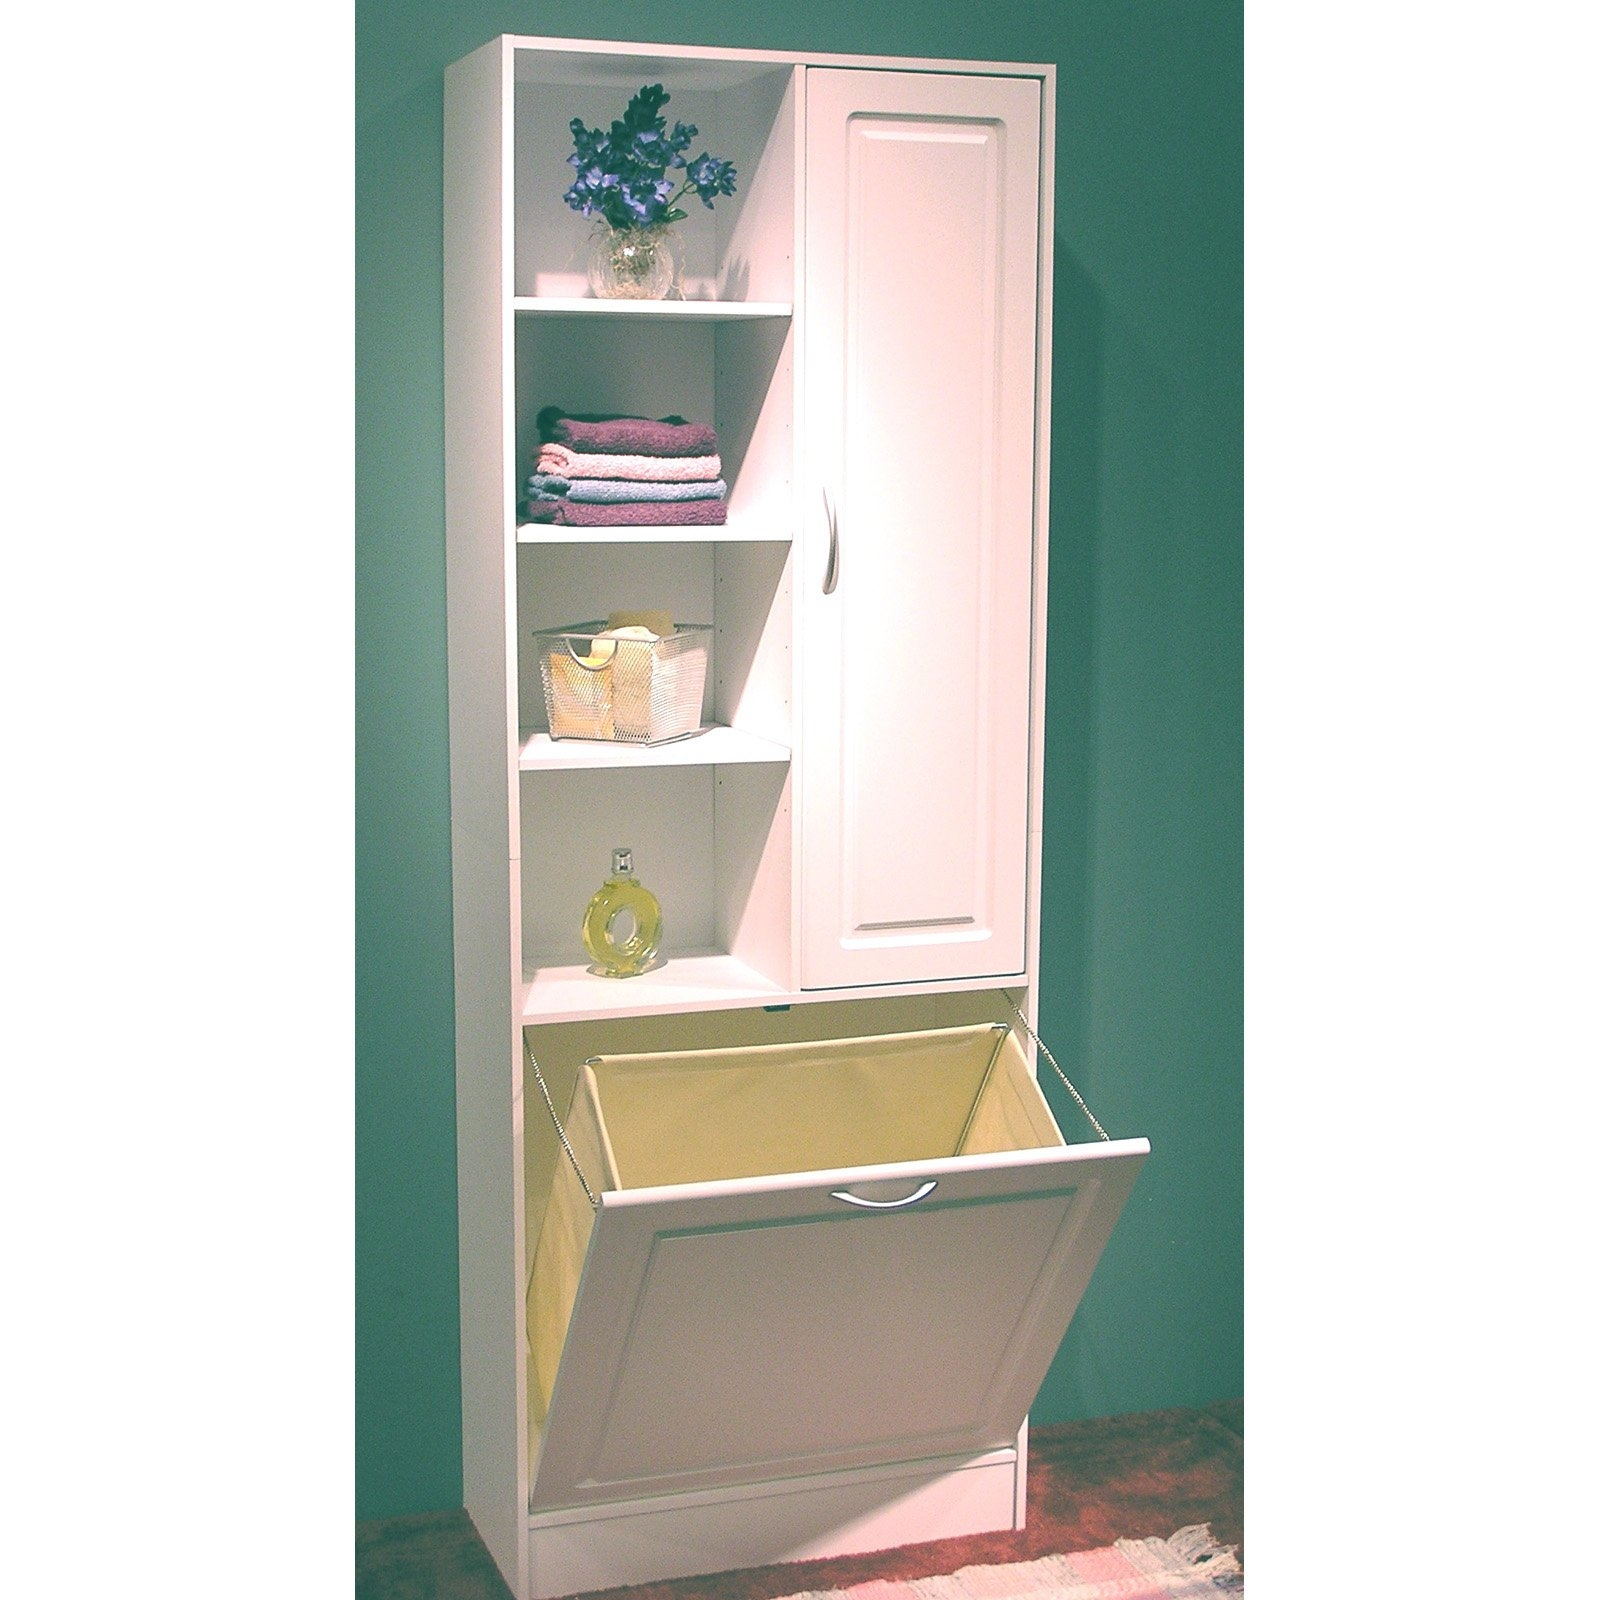 Bathroom Cabinets With Laundry Basket